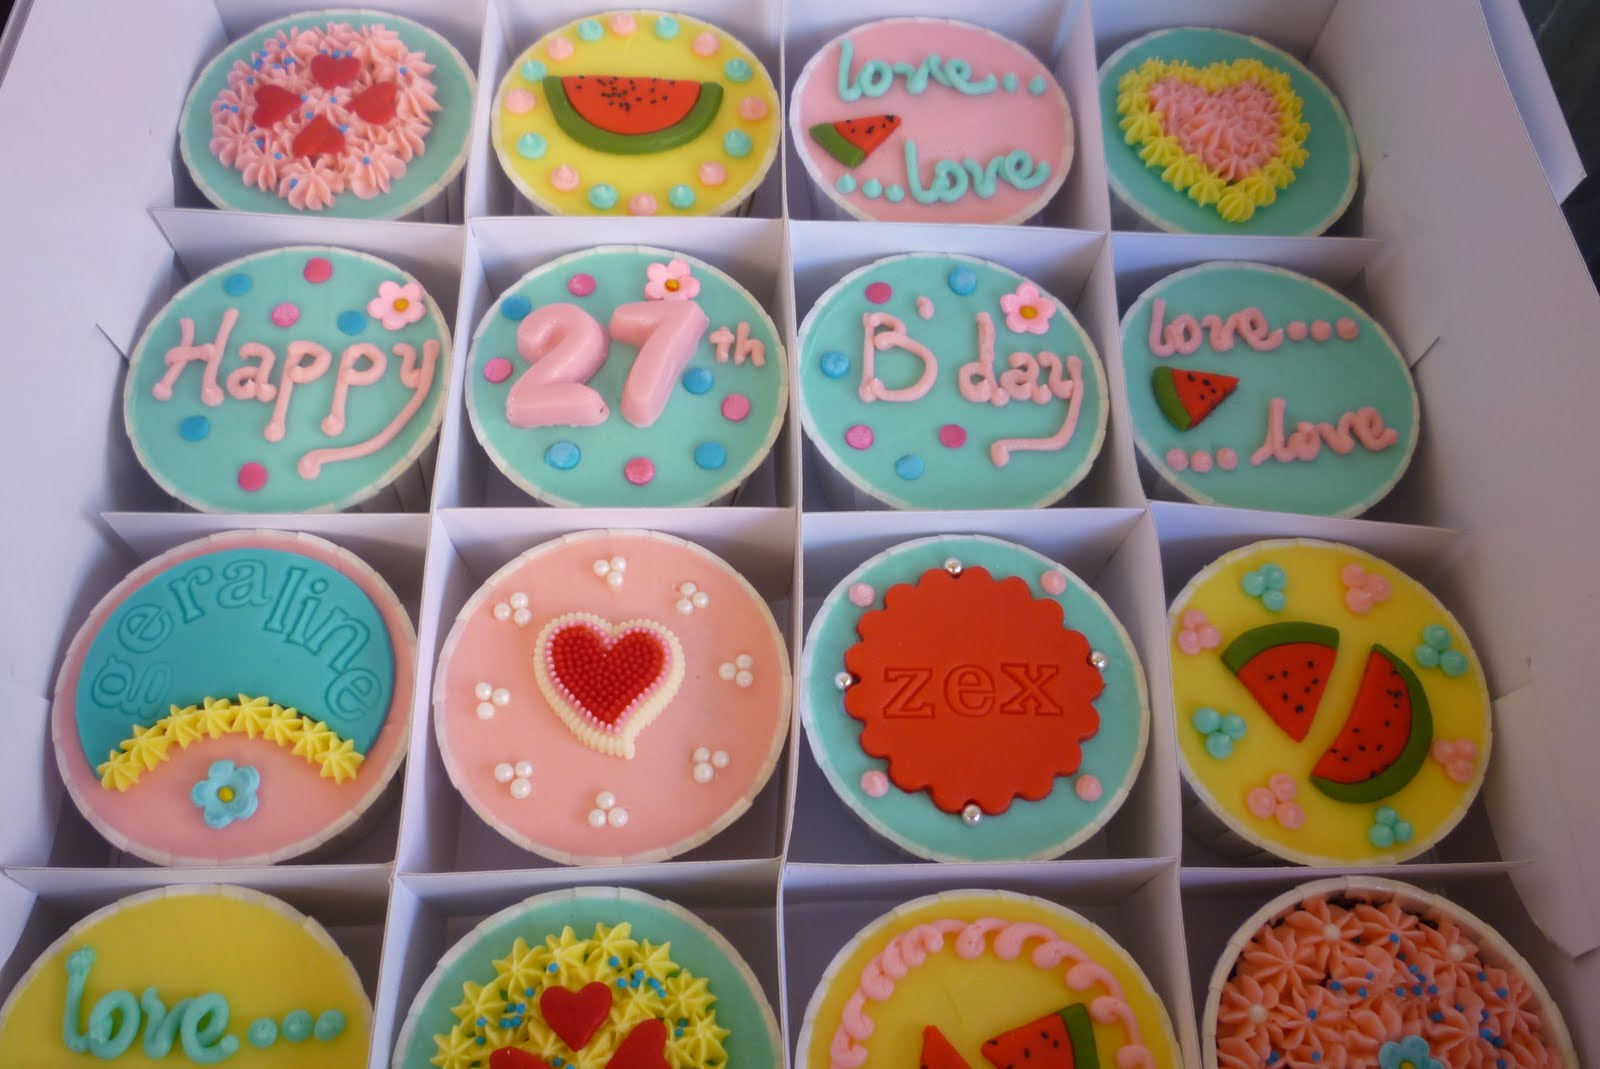 petite cupcakes: happy 27th birthday ♥